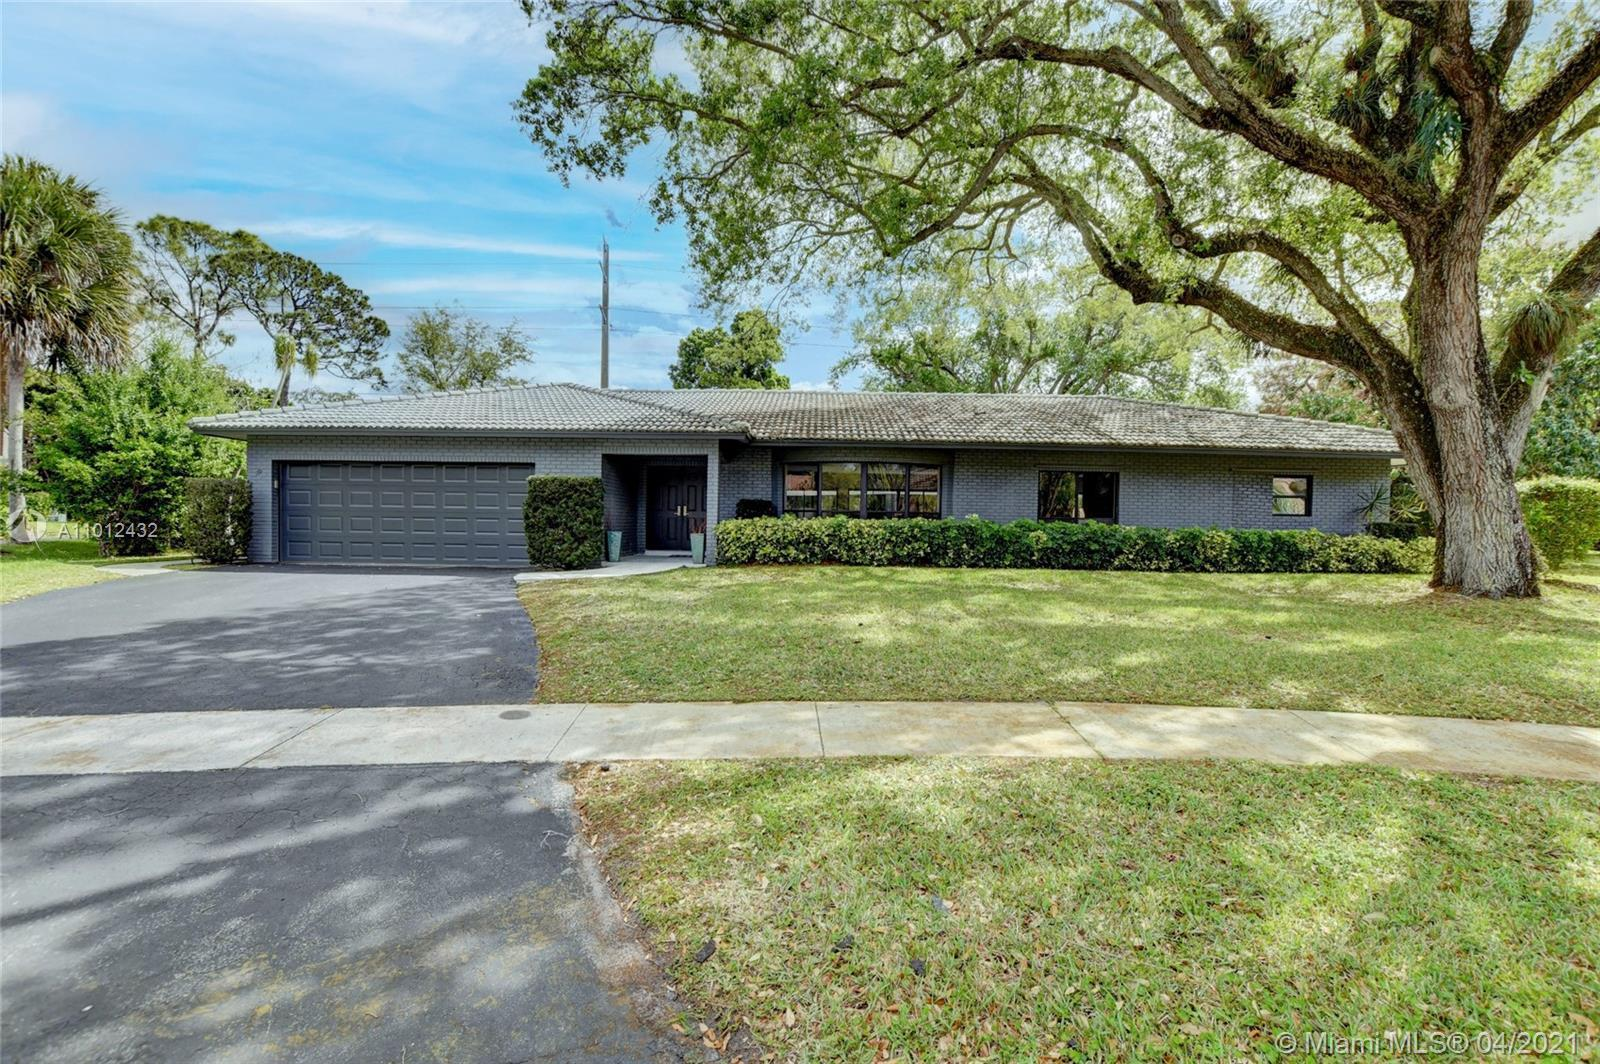 Spectacular 4/3 Single Family home on 1/2 acre cul-de-sec in gated community. Complete modern reno-